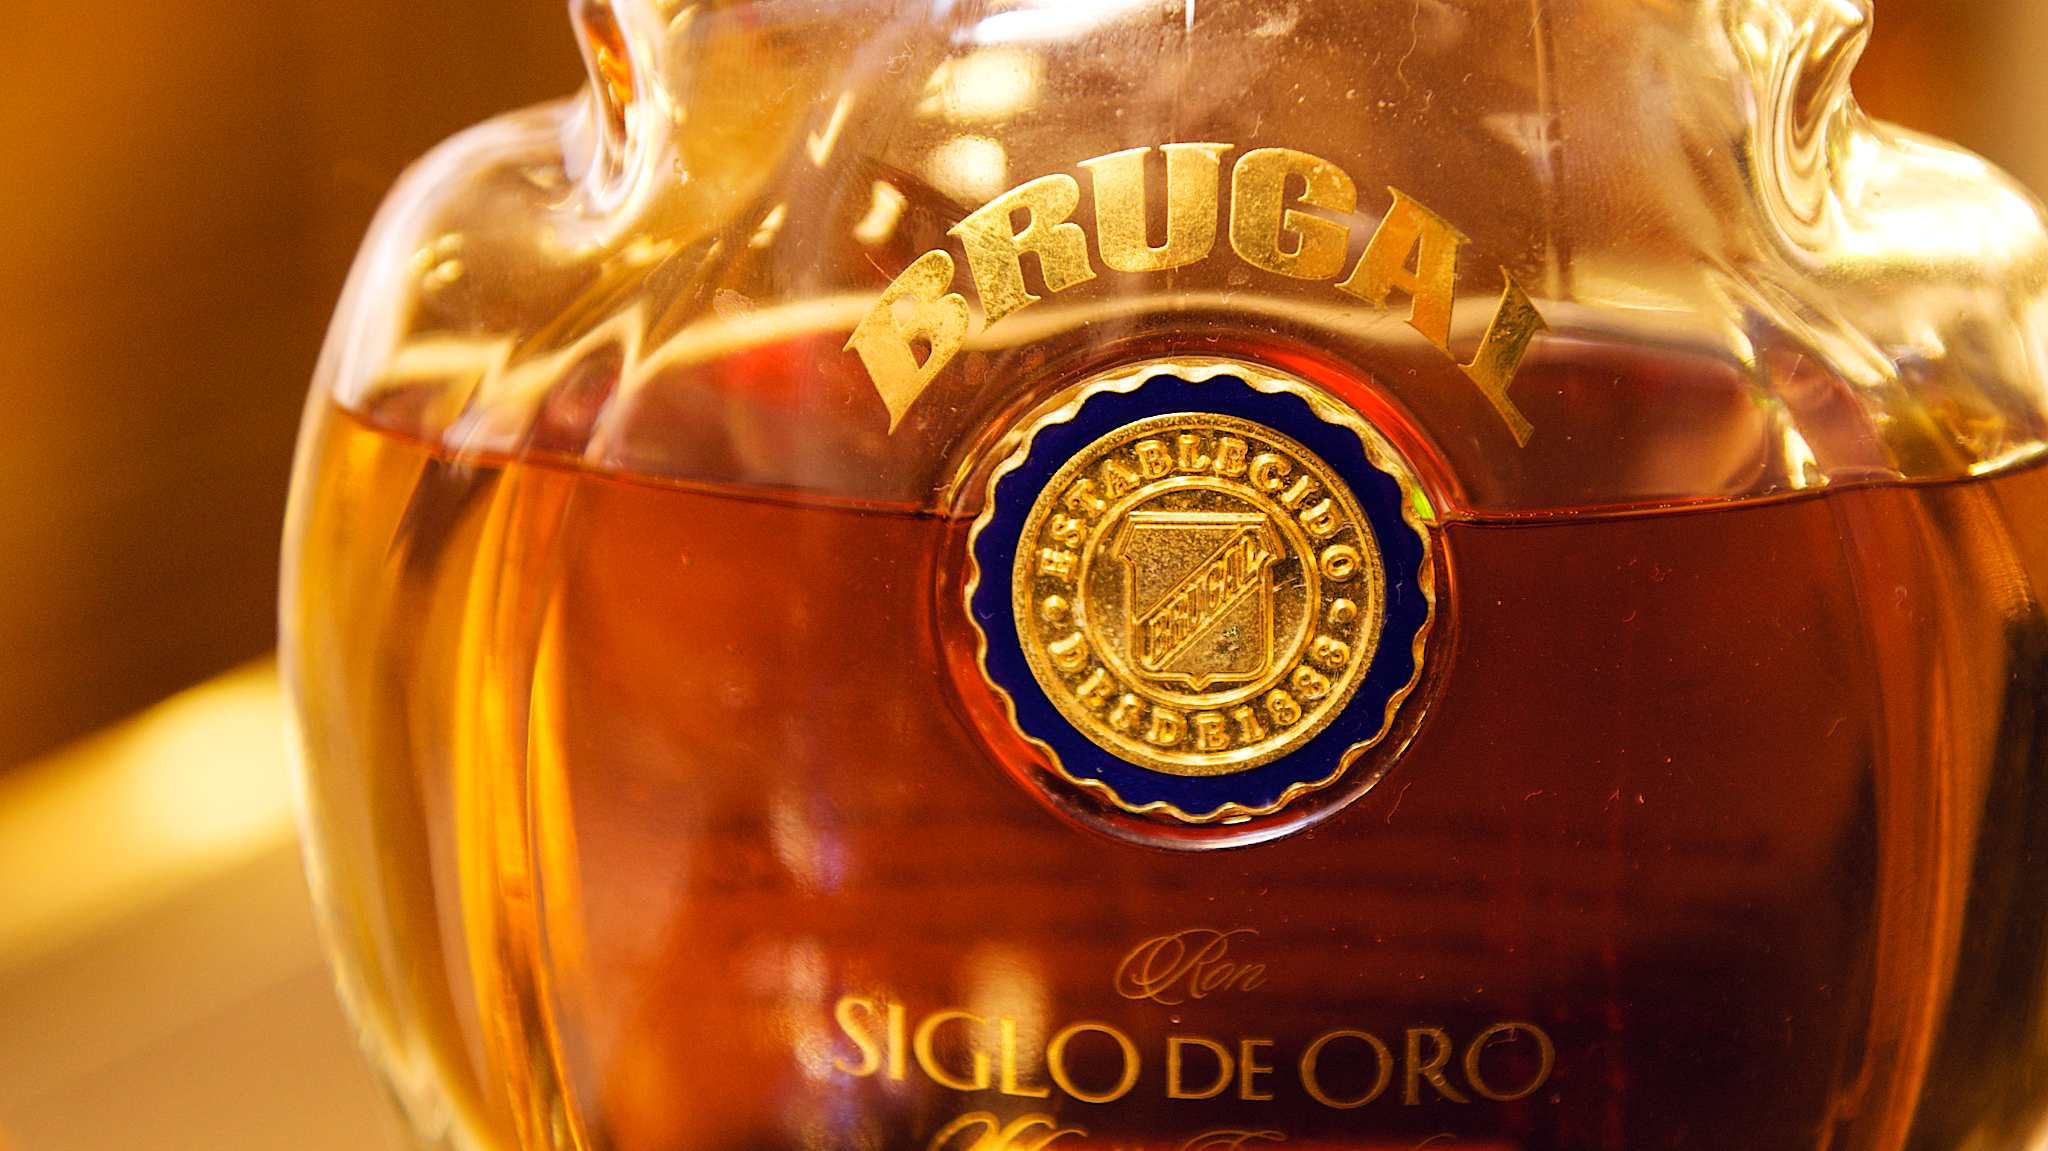 Brugal Siglo de Oro: Rum Masterpiece 100 Years in the Making